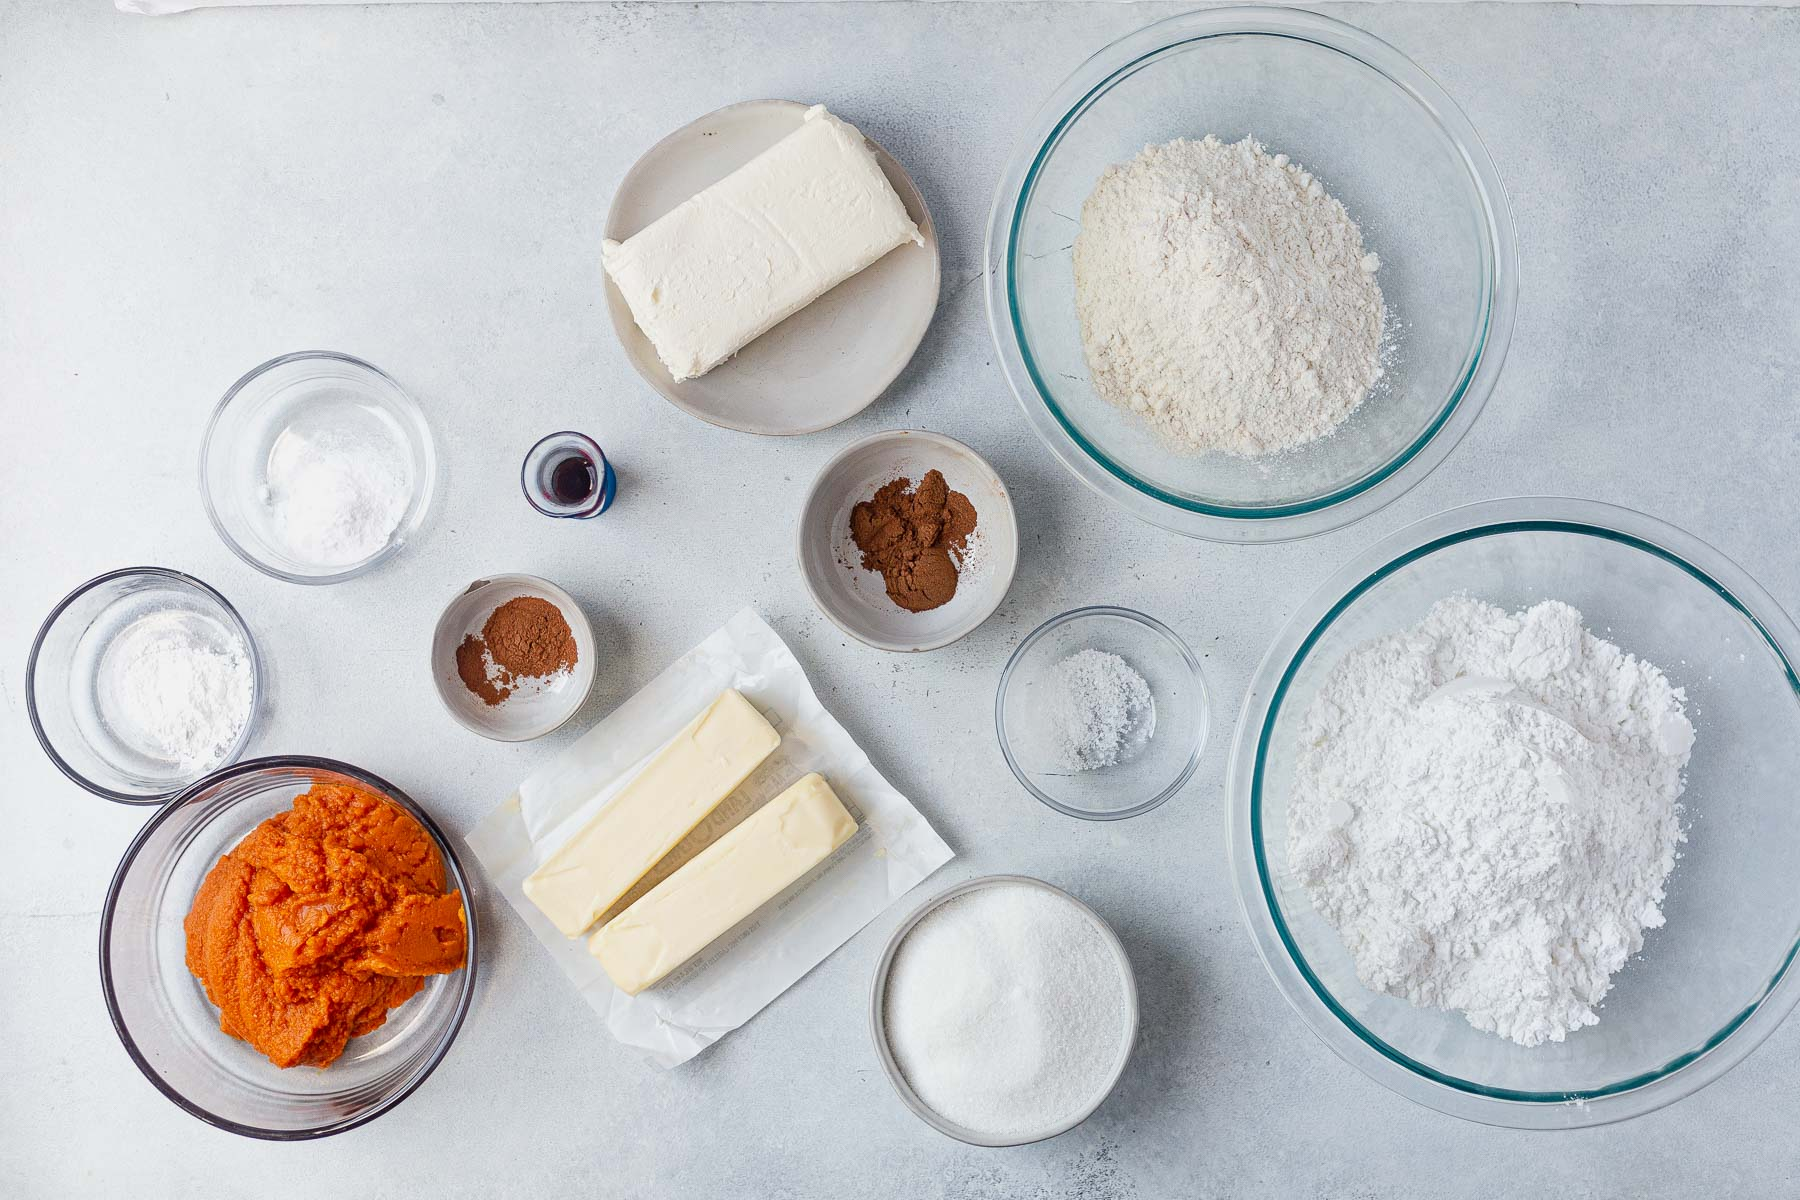 ingredients for pumpkin cookies on a table